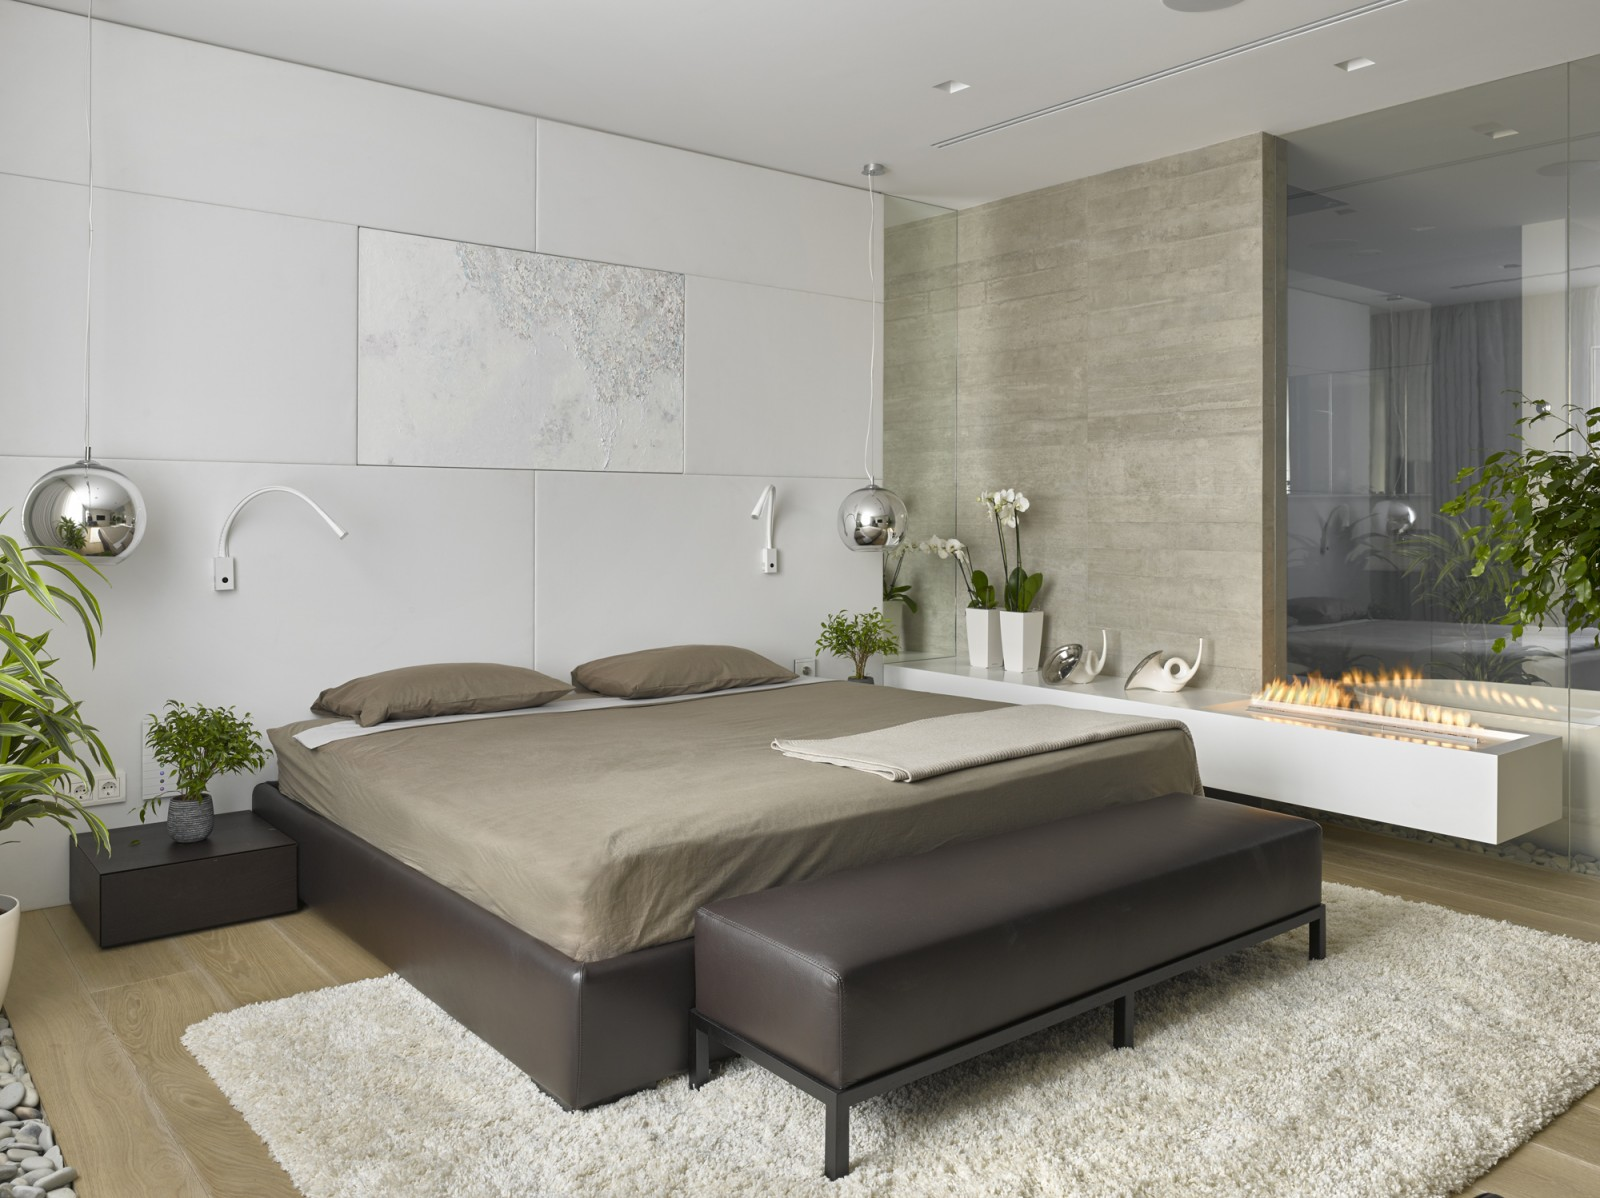 Beau Elegant Modern Bedroom Idea From Alexandra Fedorova